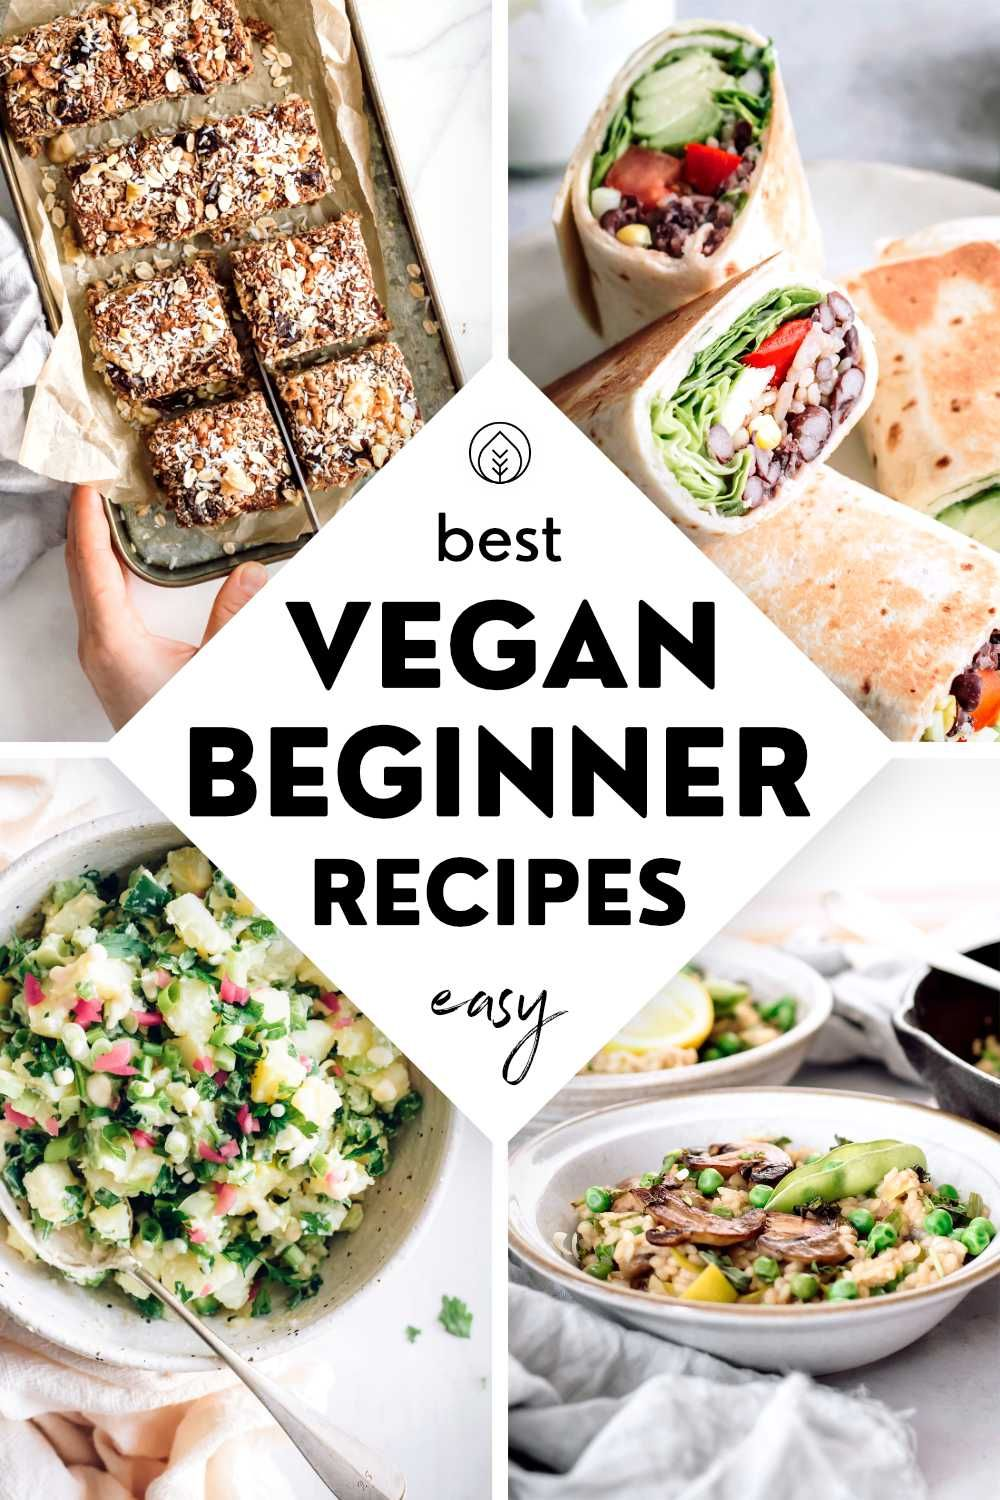 Quick Simple Vegan Recipes For Beginners And Busy People In 2020 Vegan Recipes Easy Plant Based Recipes Dinner Vegan Recipes Beginner